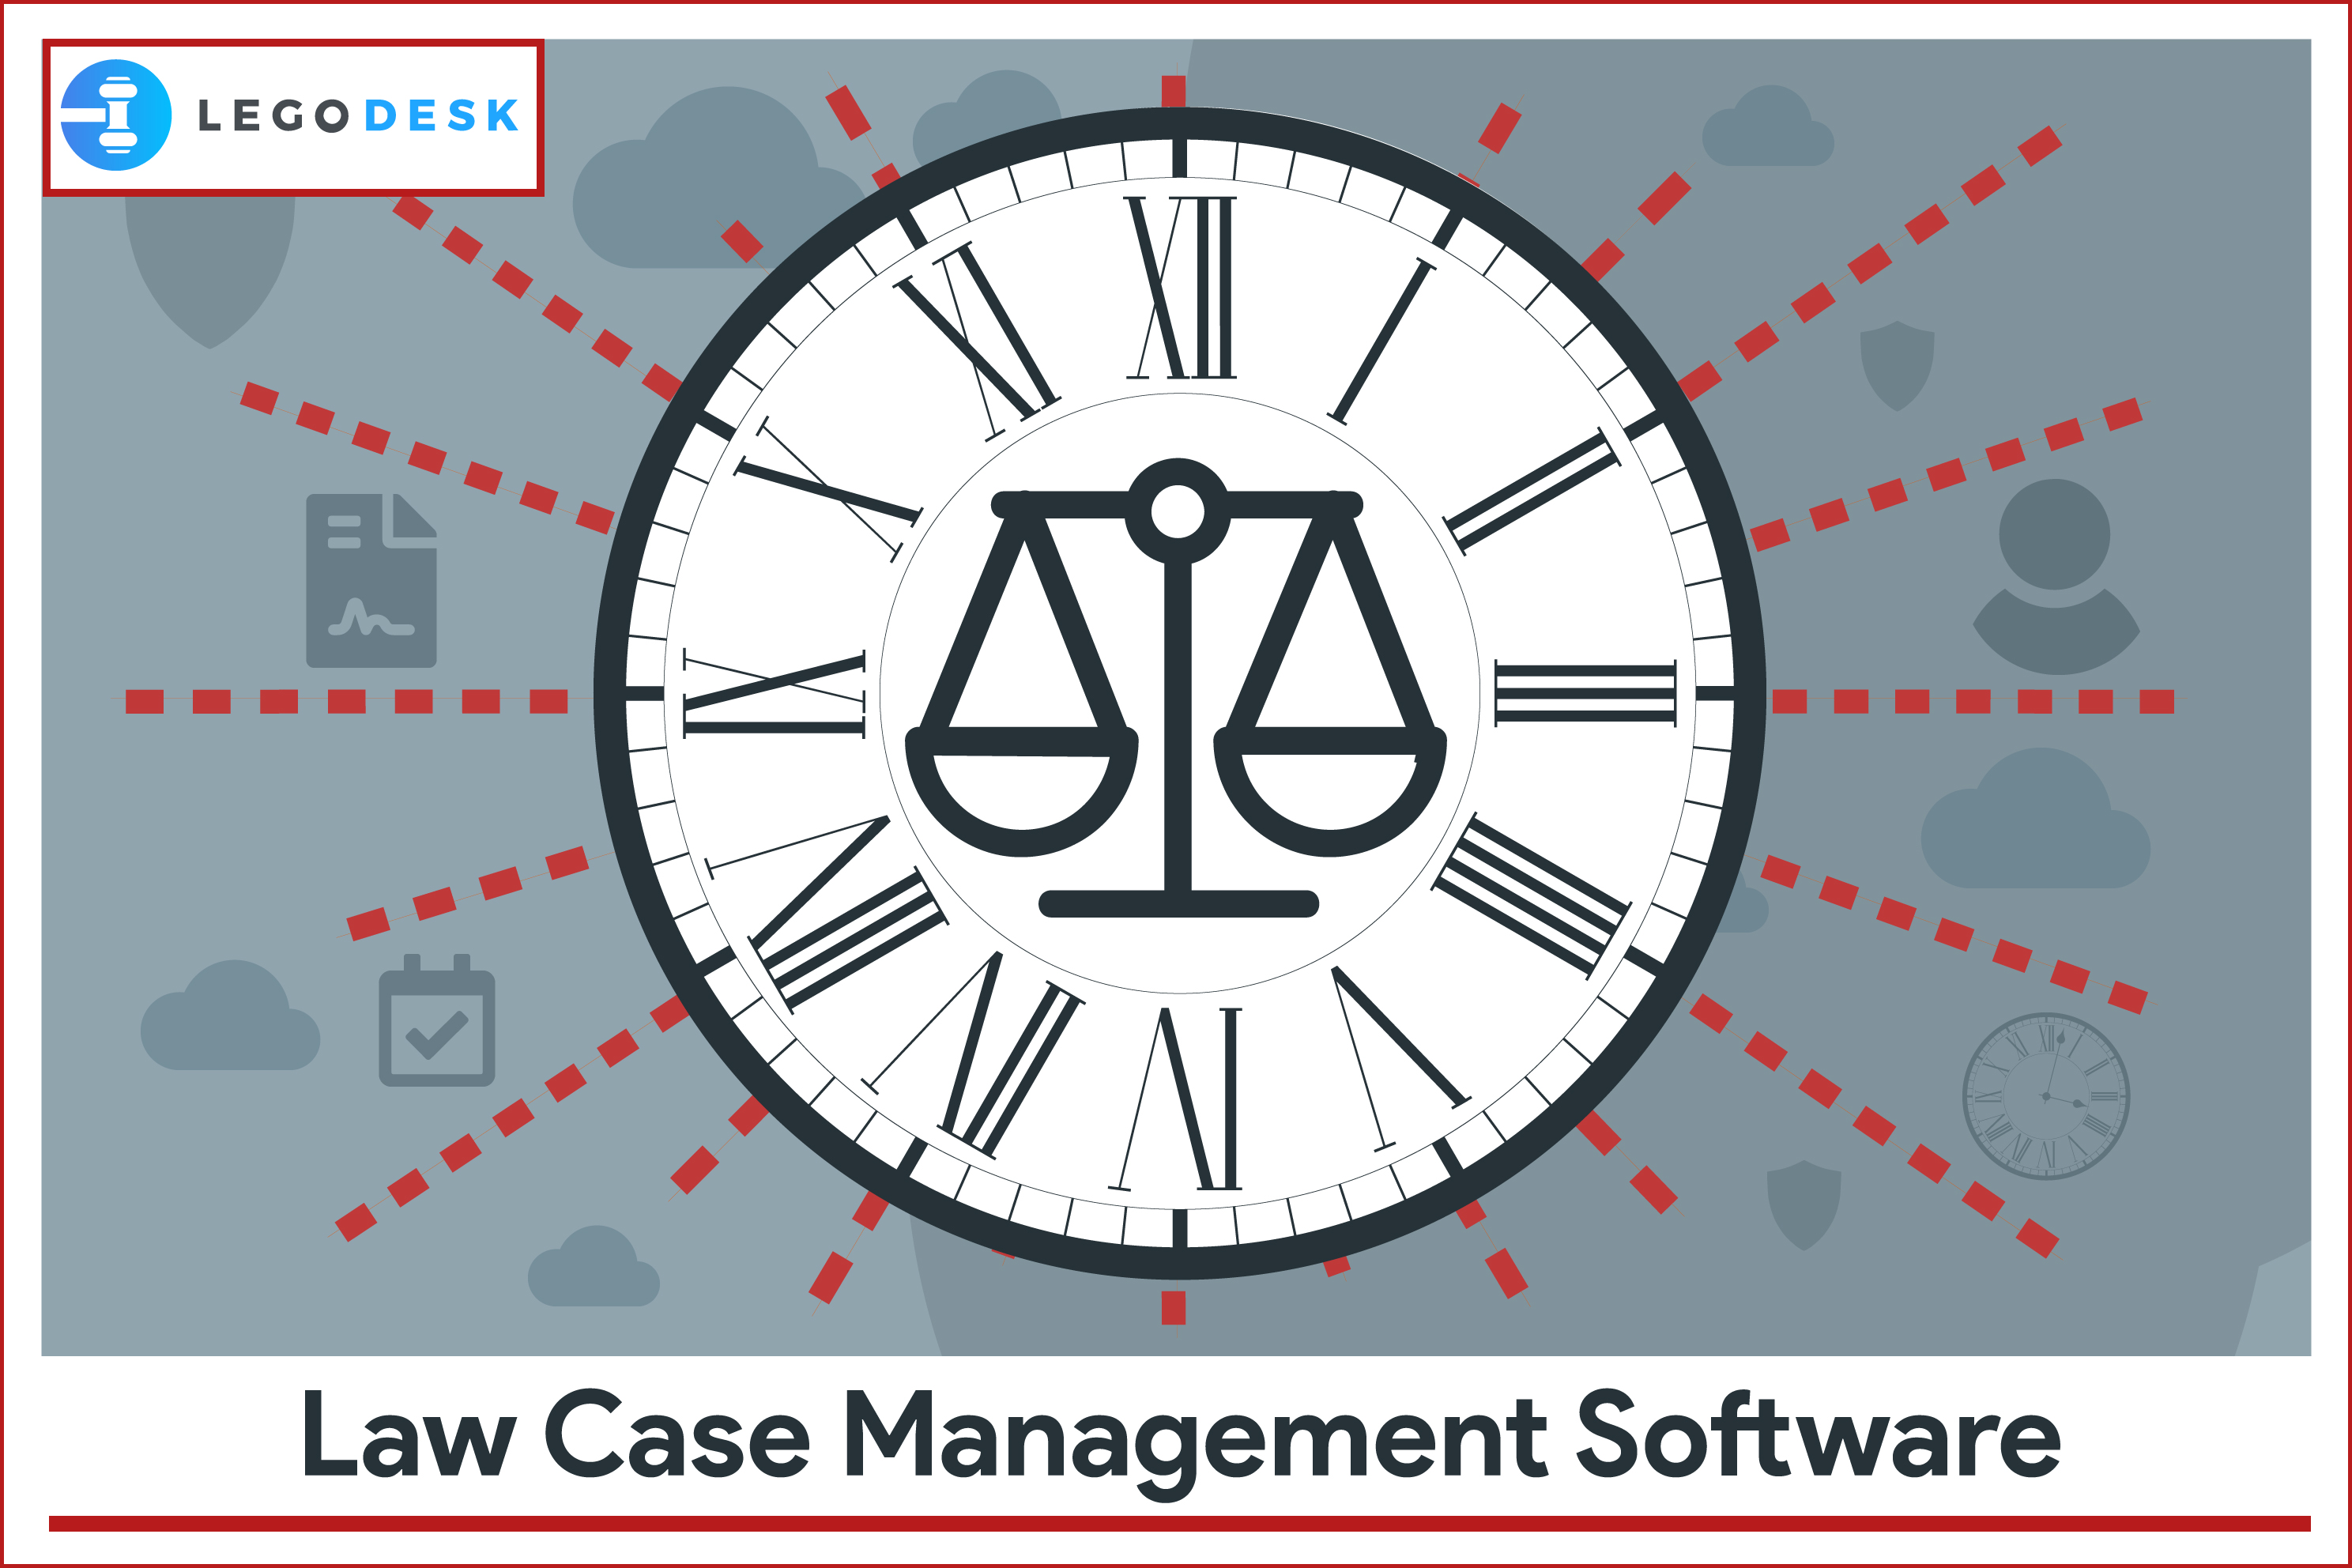 Why Law Case Management Software is Important to Lawyers?